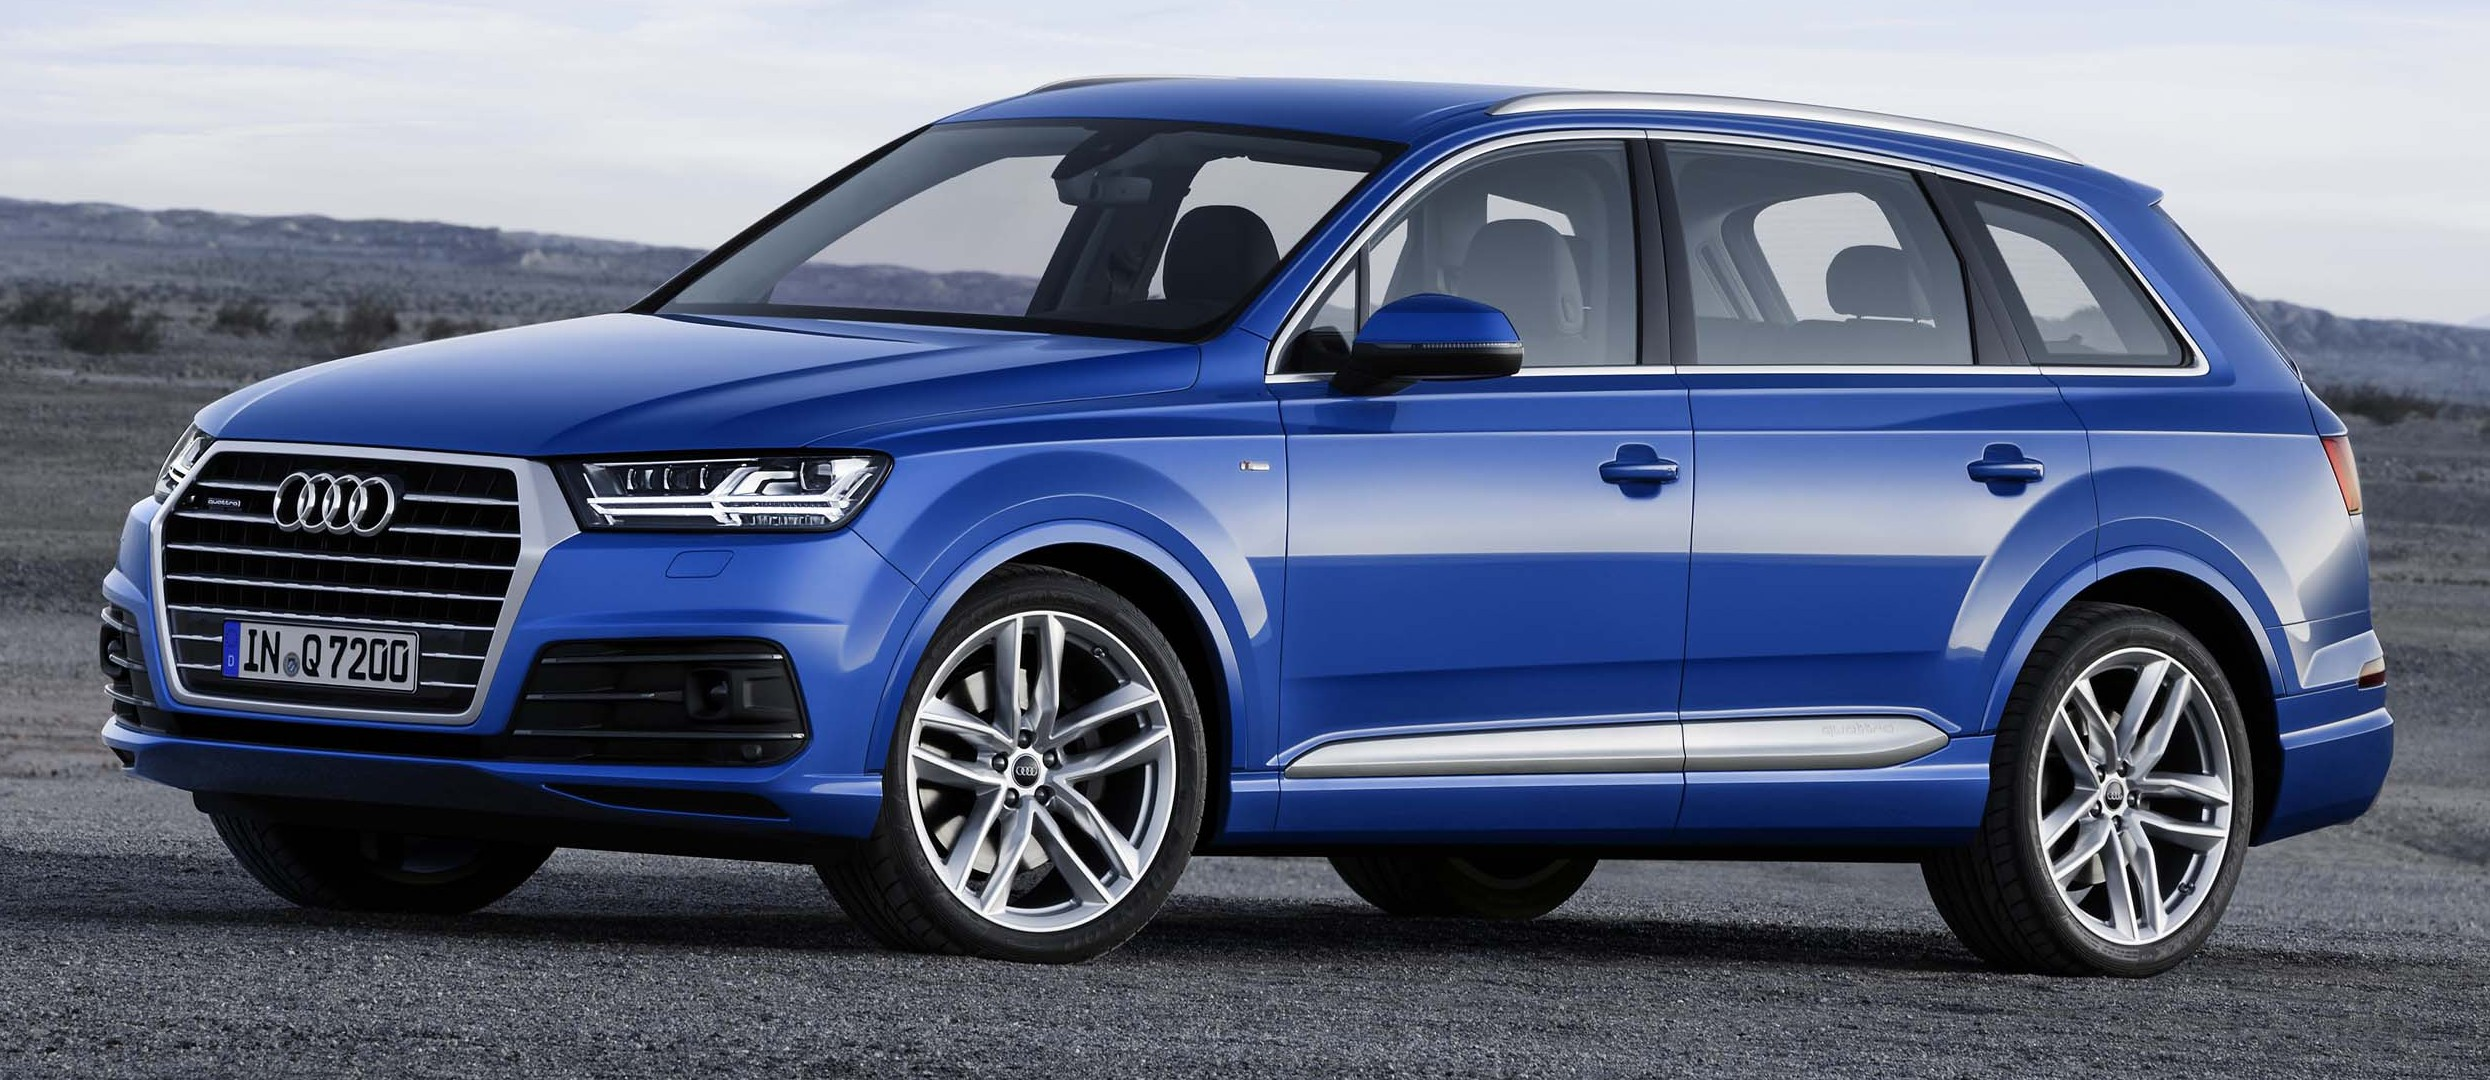 Audi Q7 Second Generation 7 Seater Suv Debuts Paul Tan